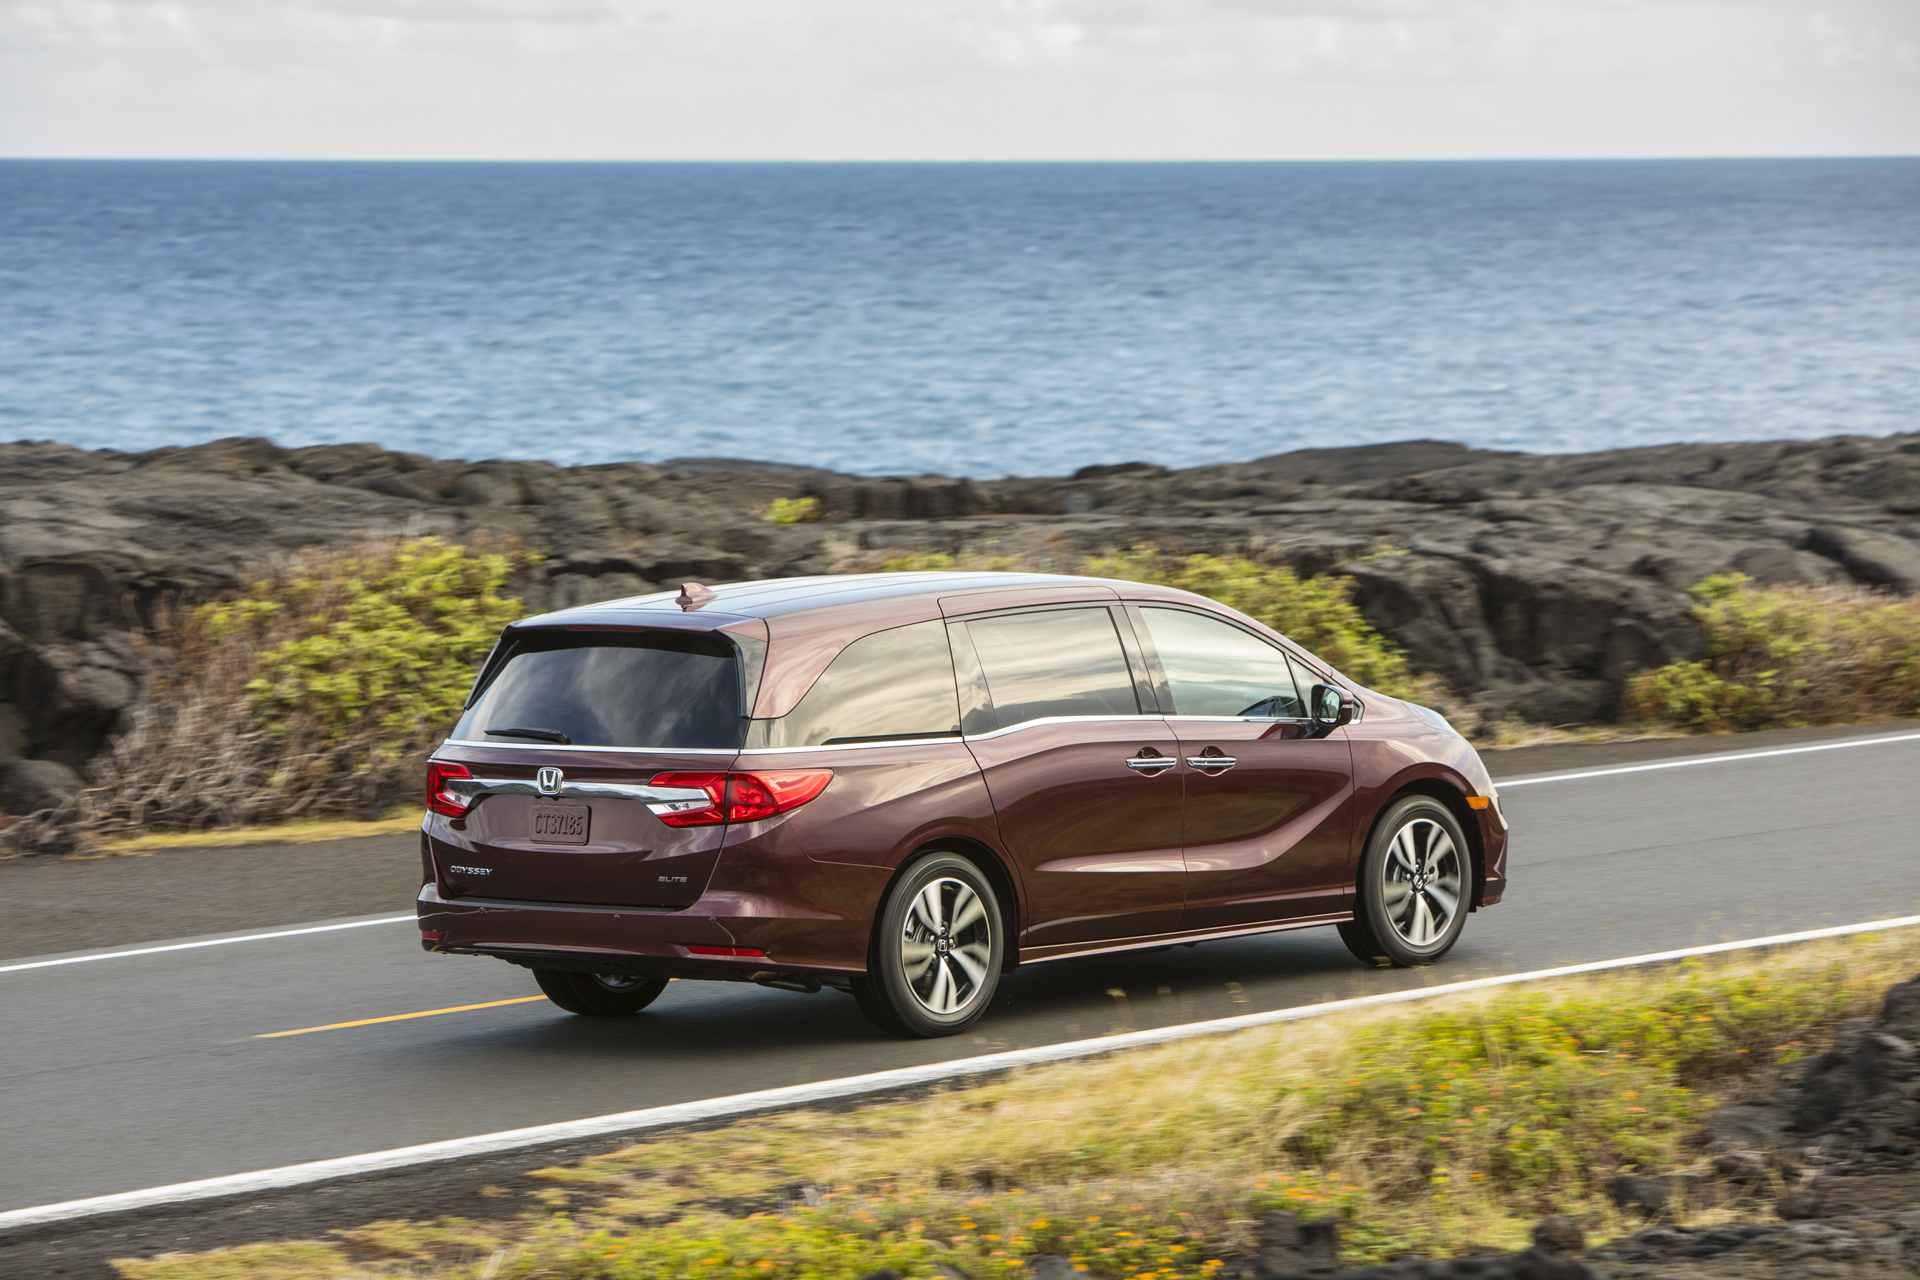 2020 Odyssey Review.2020 Honda Odyssey Review Ratings Specs Prices And